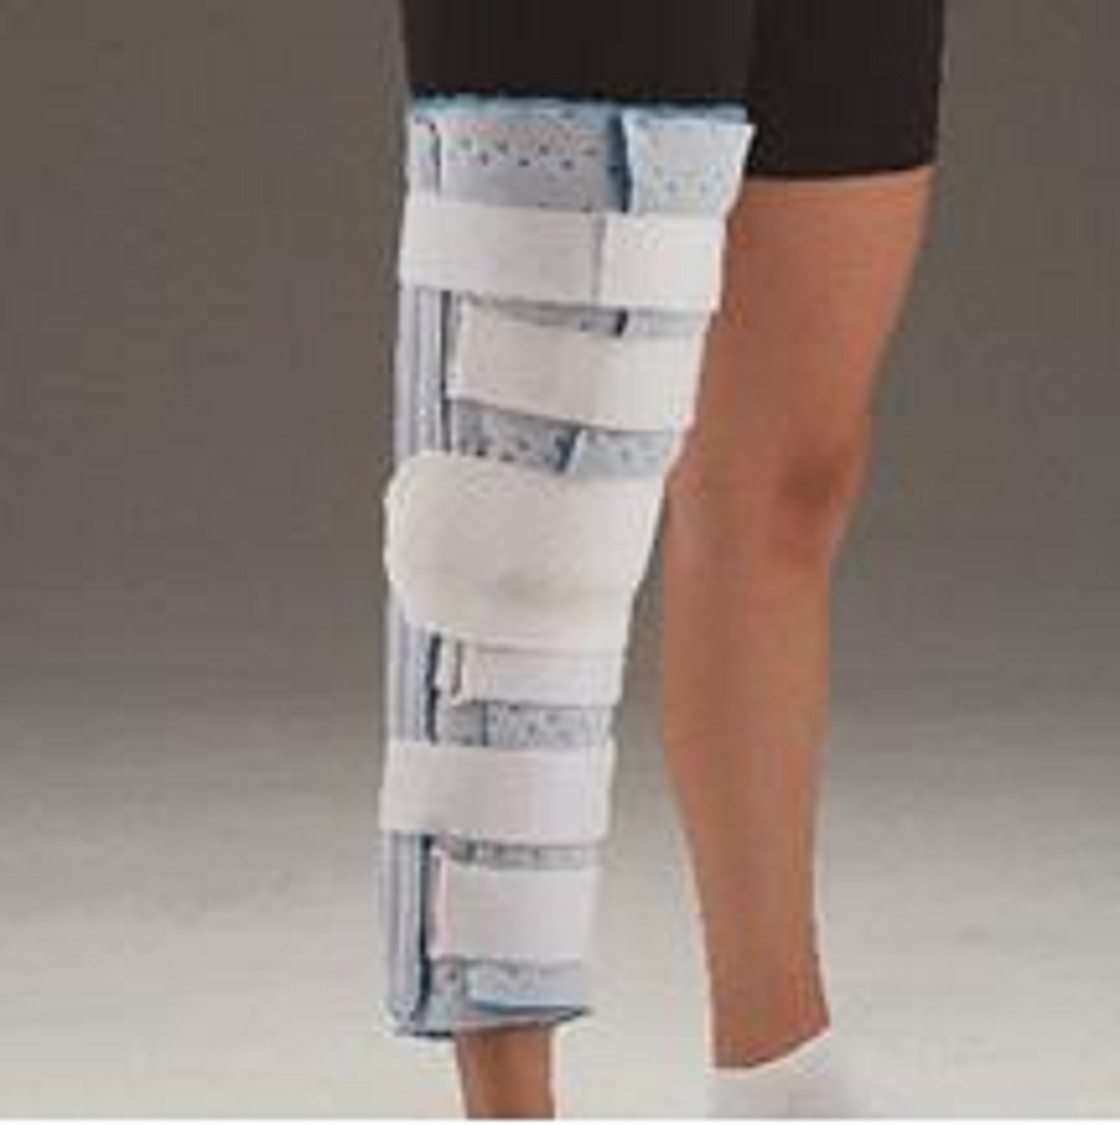 how to put on a knee immobilizer